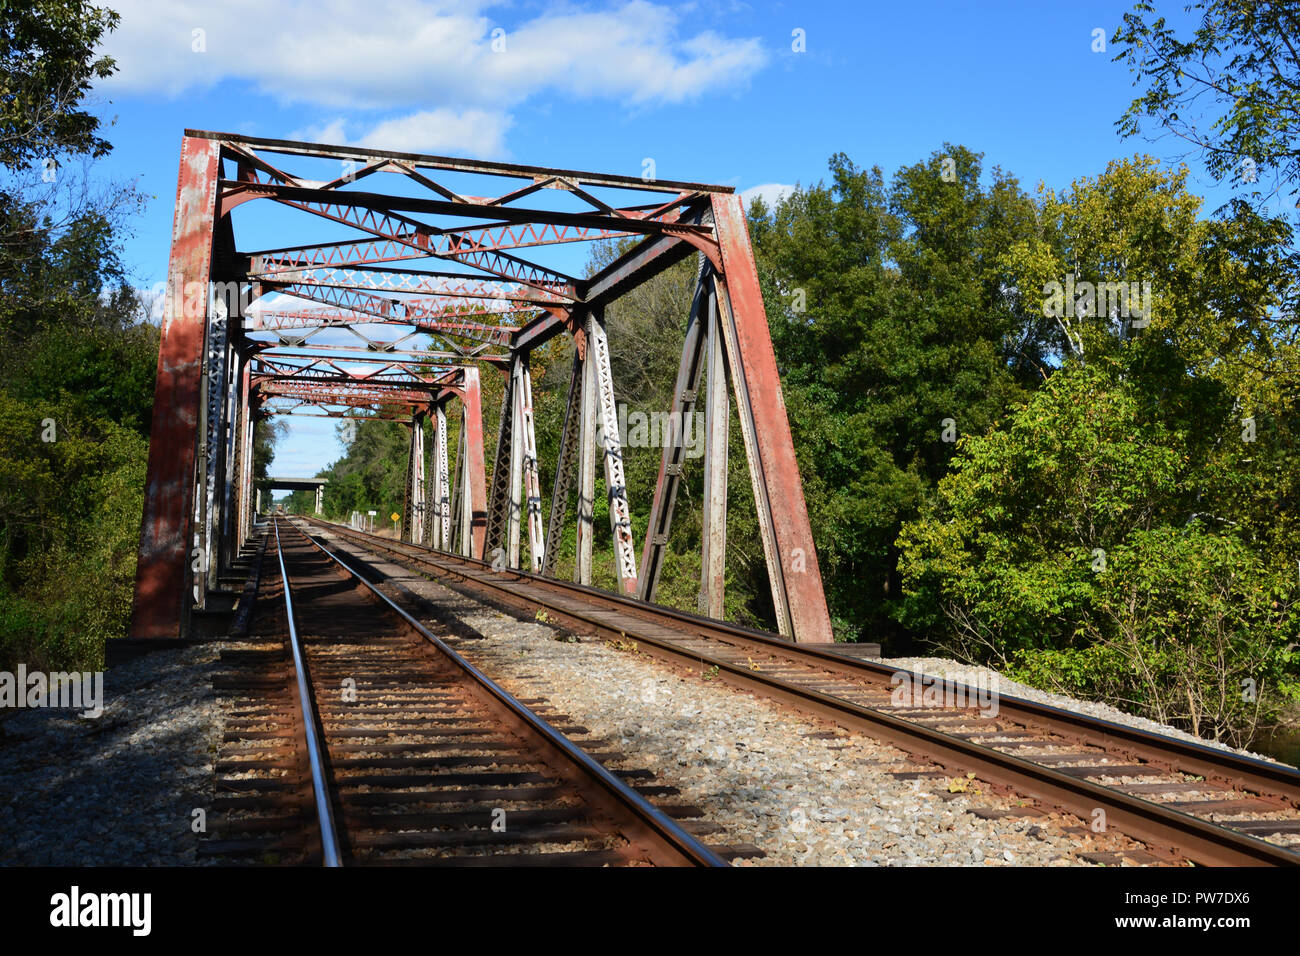 Looking down the tracks at a steel trestle bridge over the Tar River in Rocky Mount, North Carolina. Stock Photo